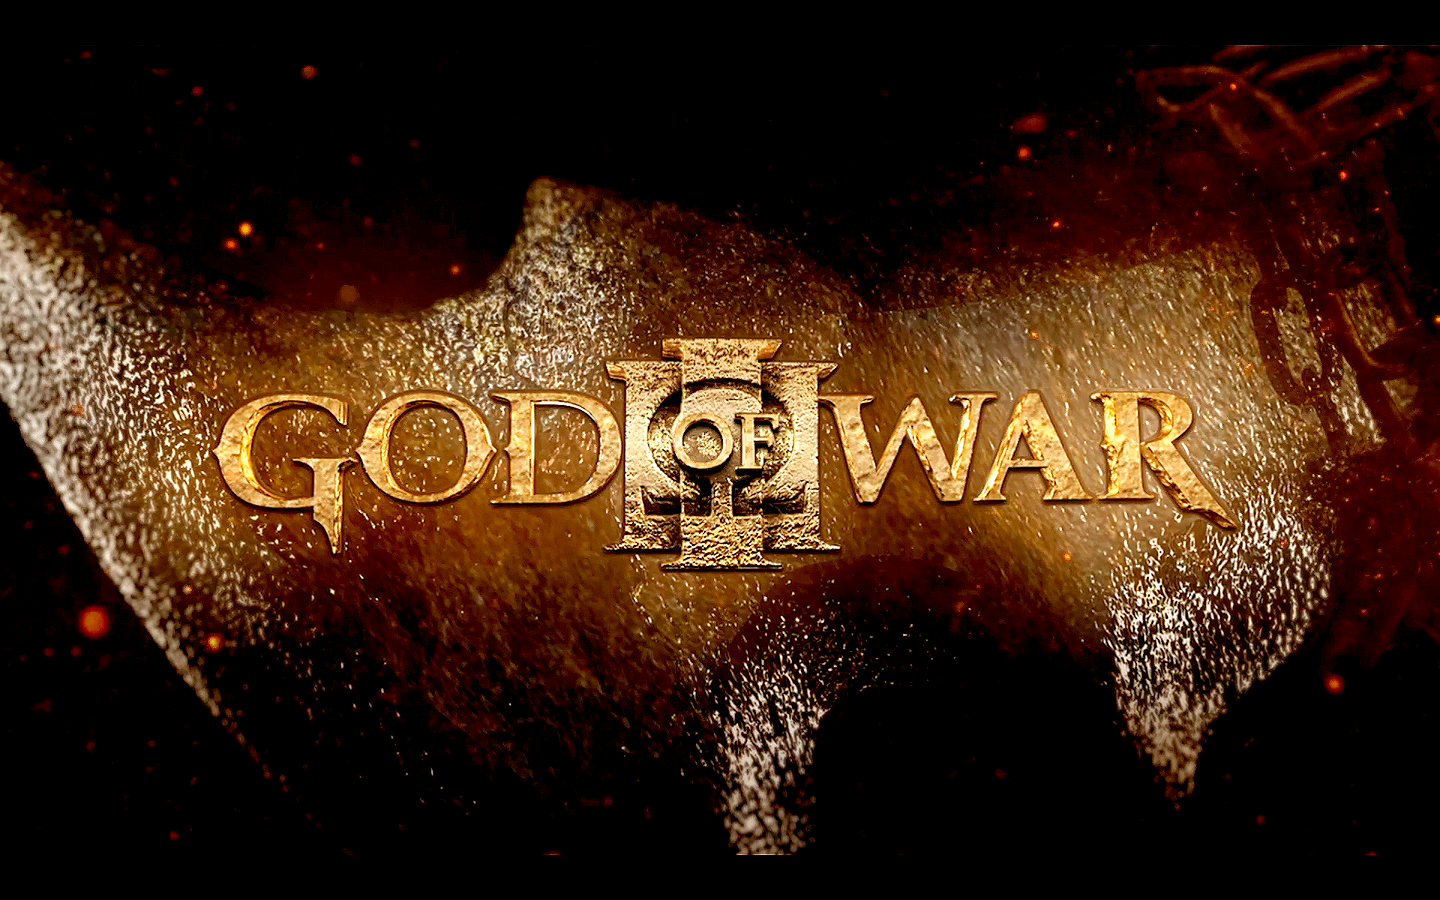 God of War 3 Wallpaper God of War 3 Wallpaper